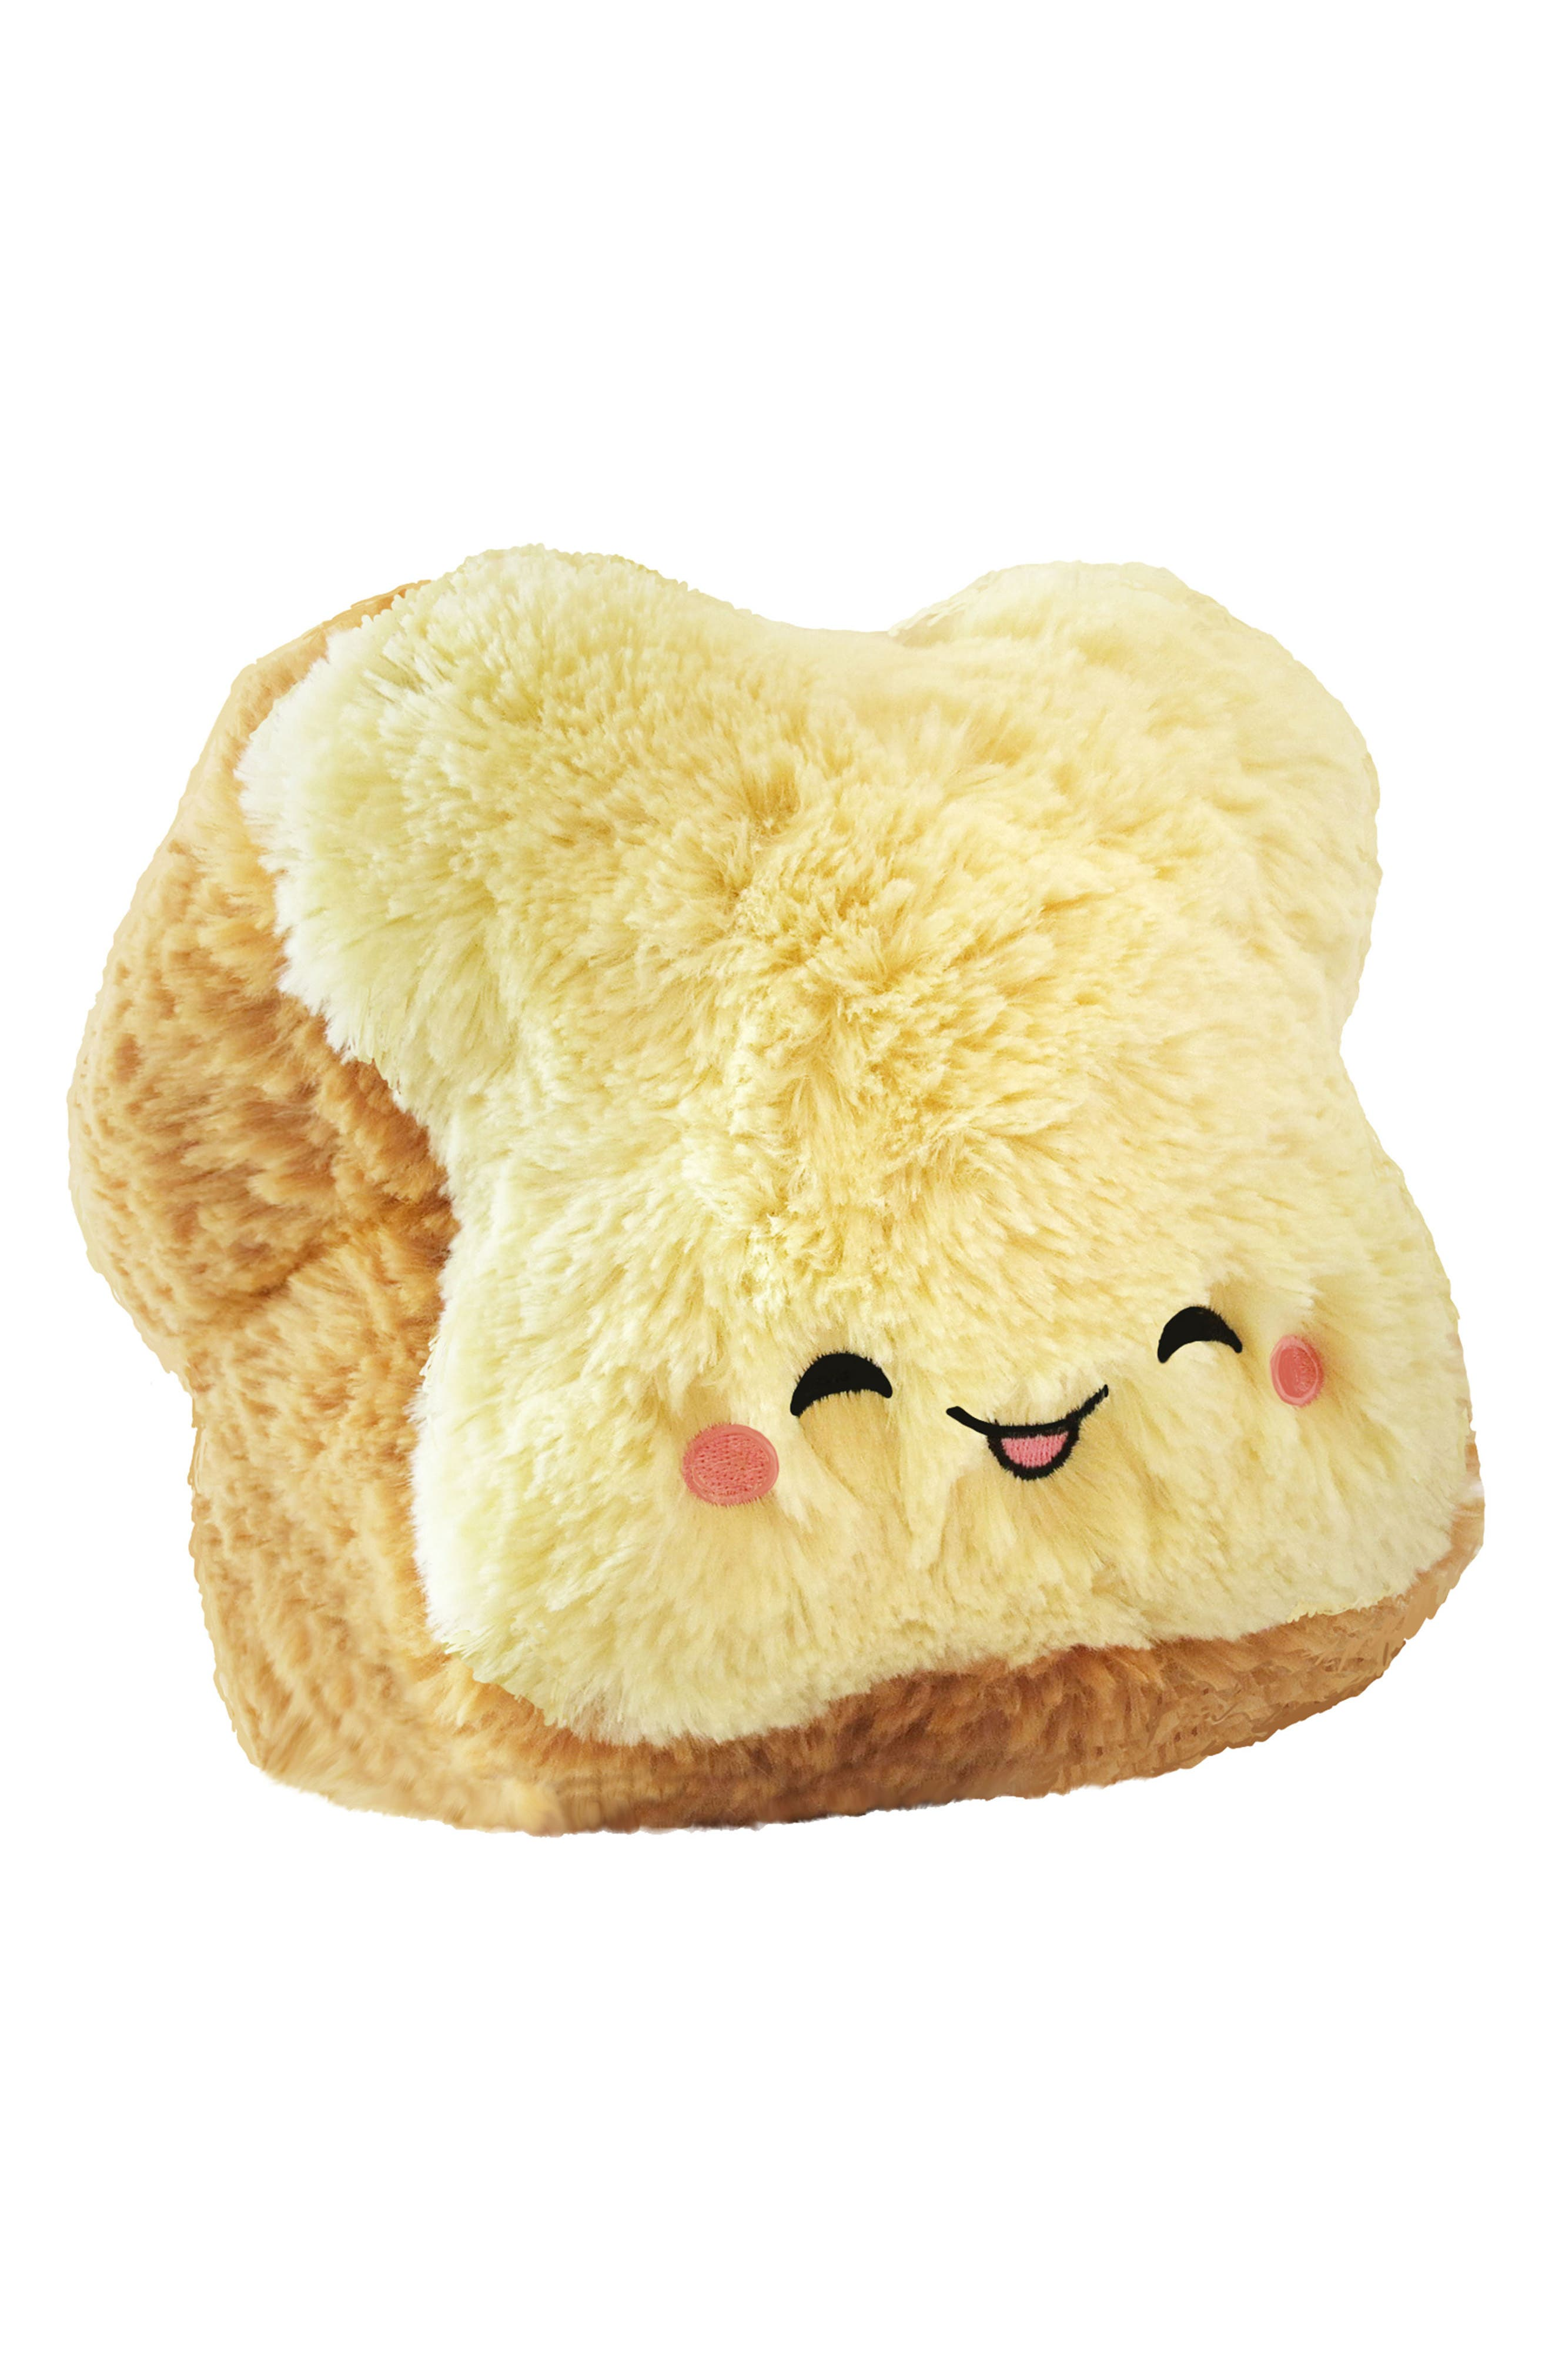 Squishable Mini Loaf of Bread Stuffed Toy